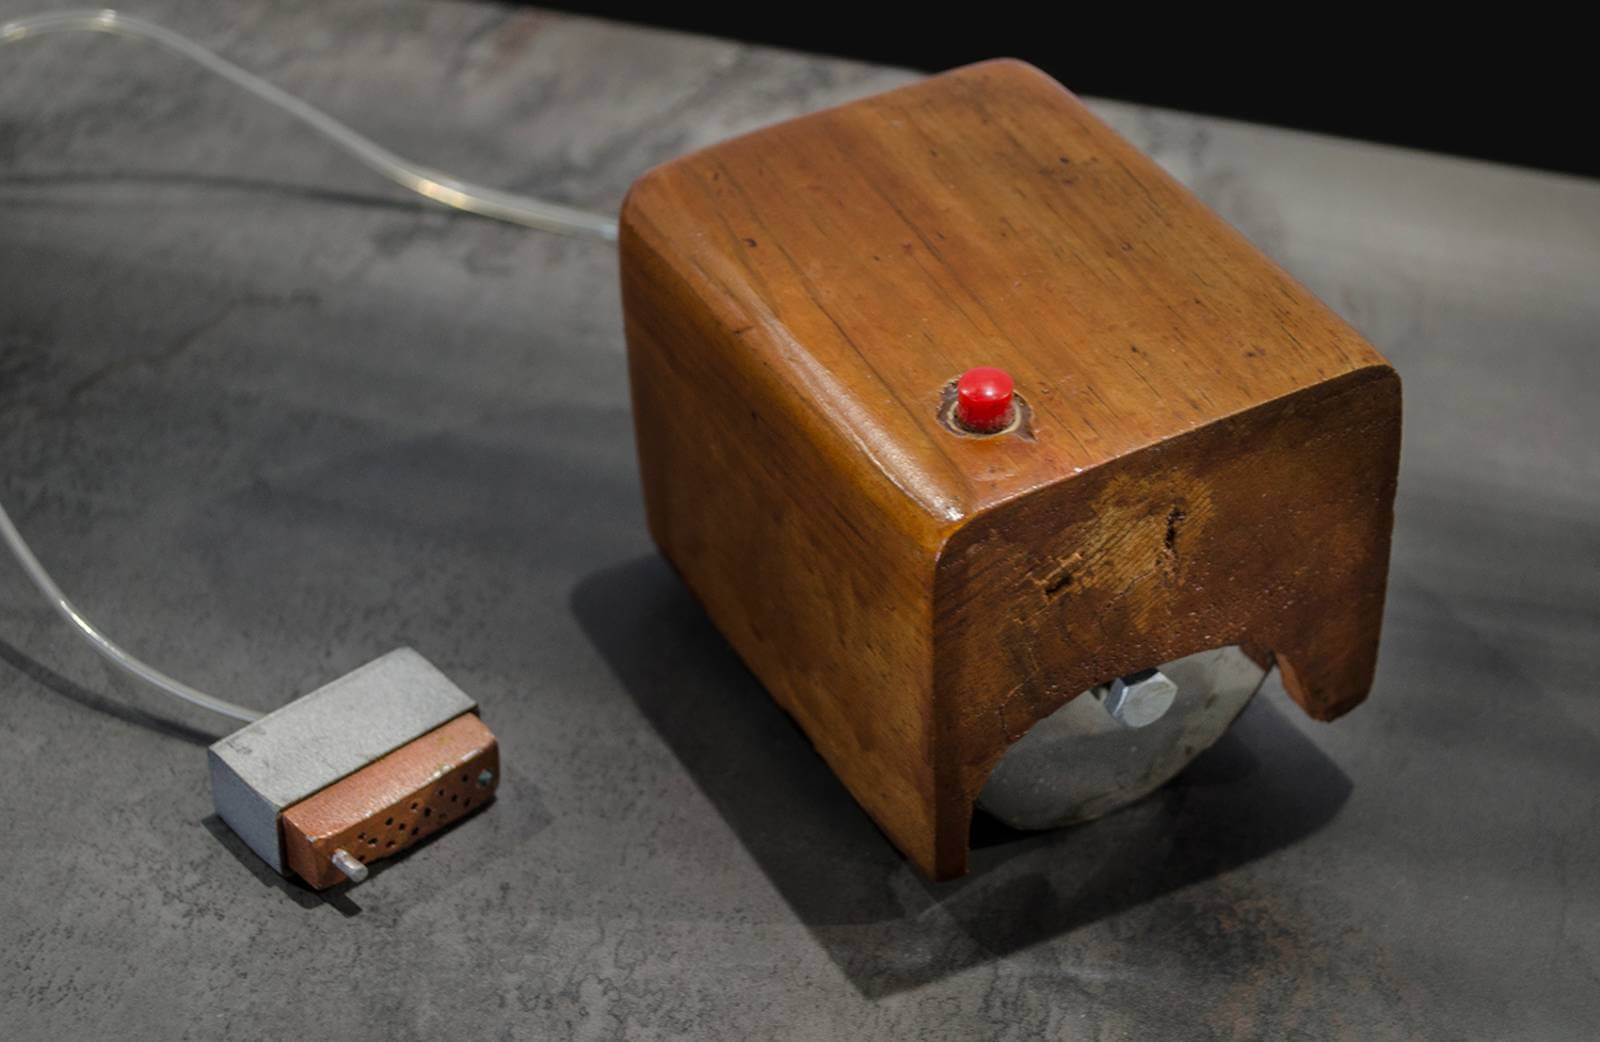 An exact replica of the first computer mouse, created by Douglas Engelbart in 1964. | Courtesy: Hellenic IT Museum